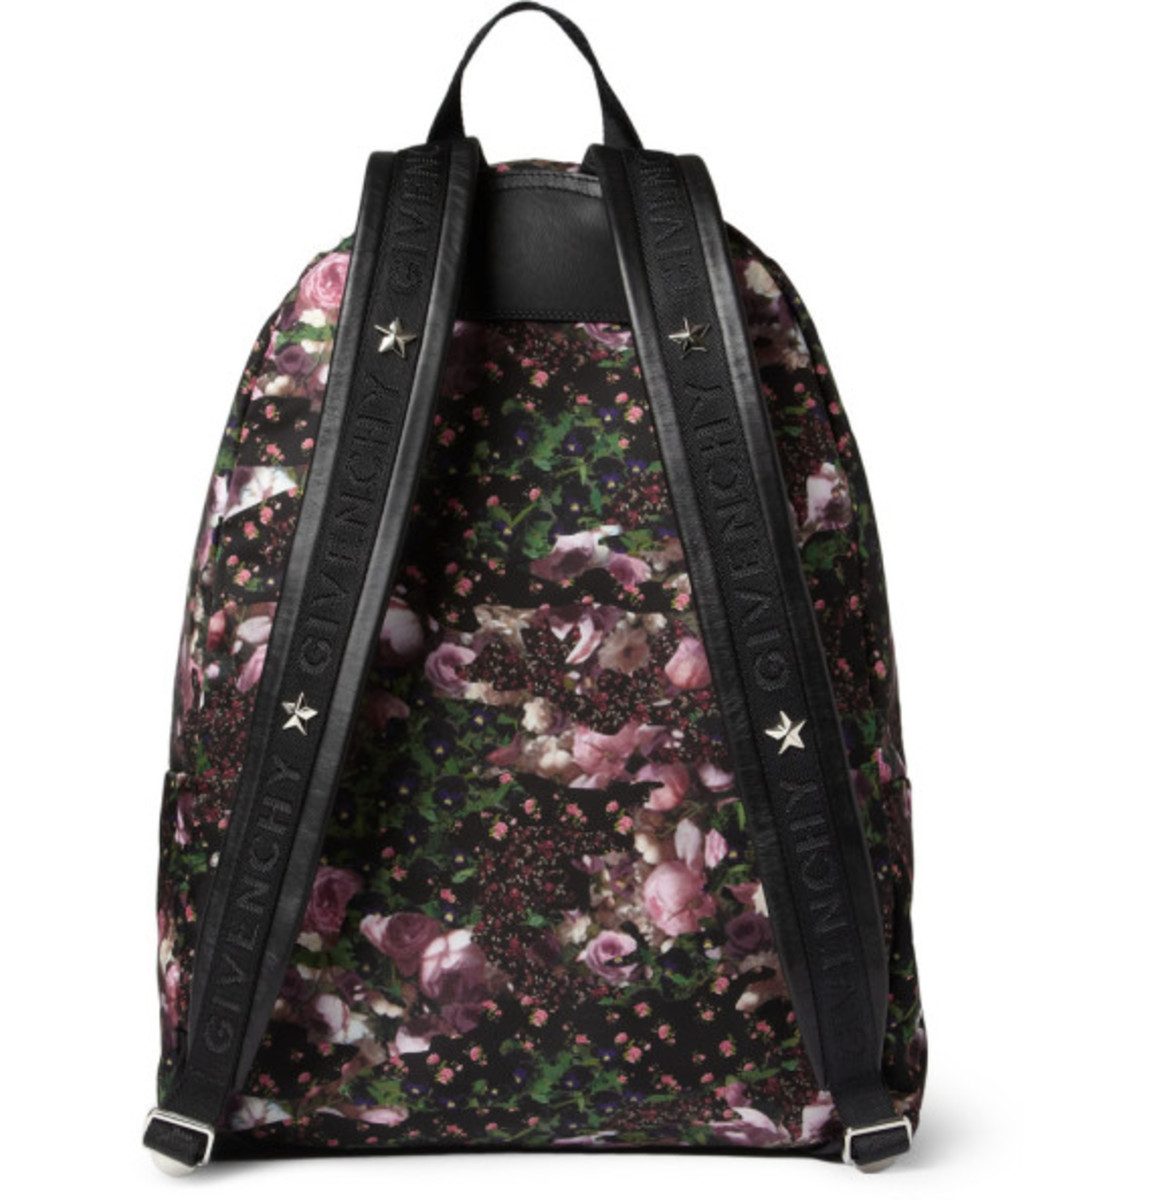 givenchy-floral-print-backpack-06